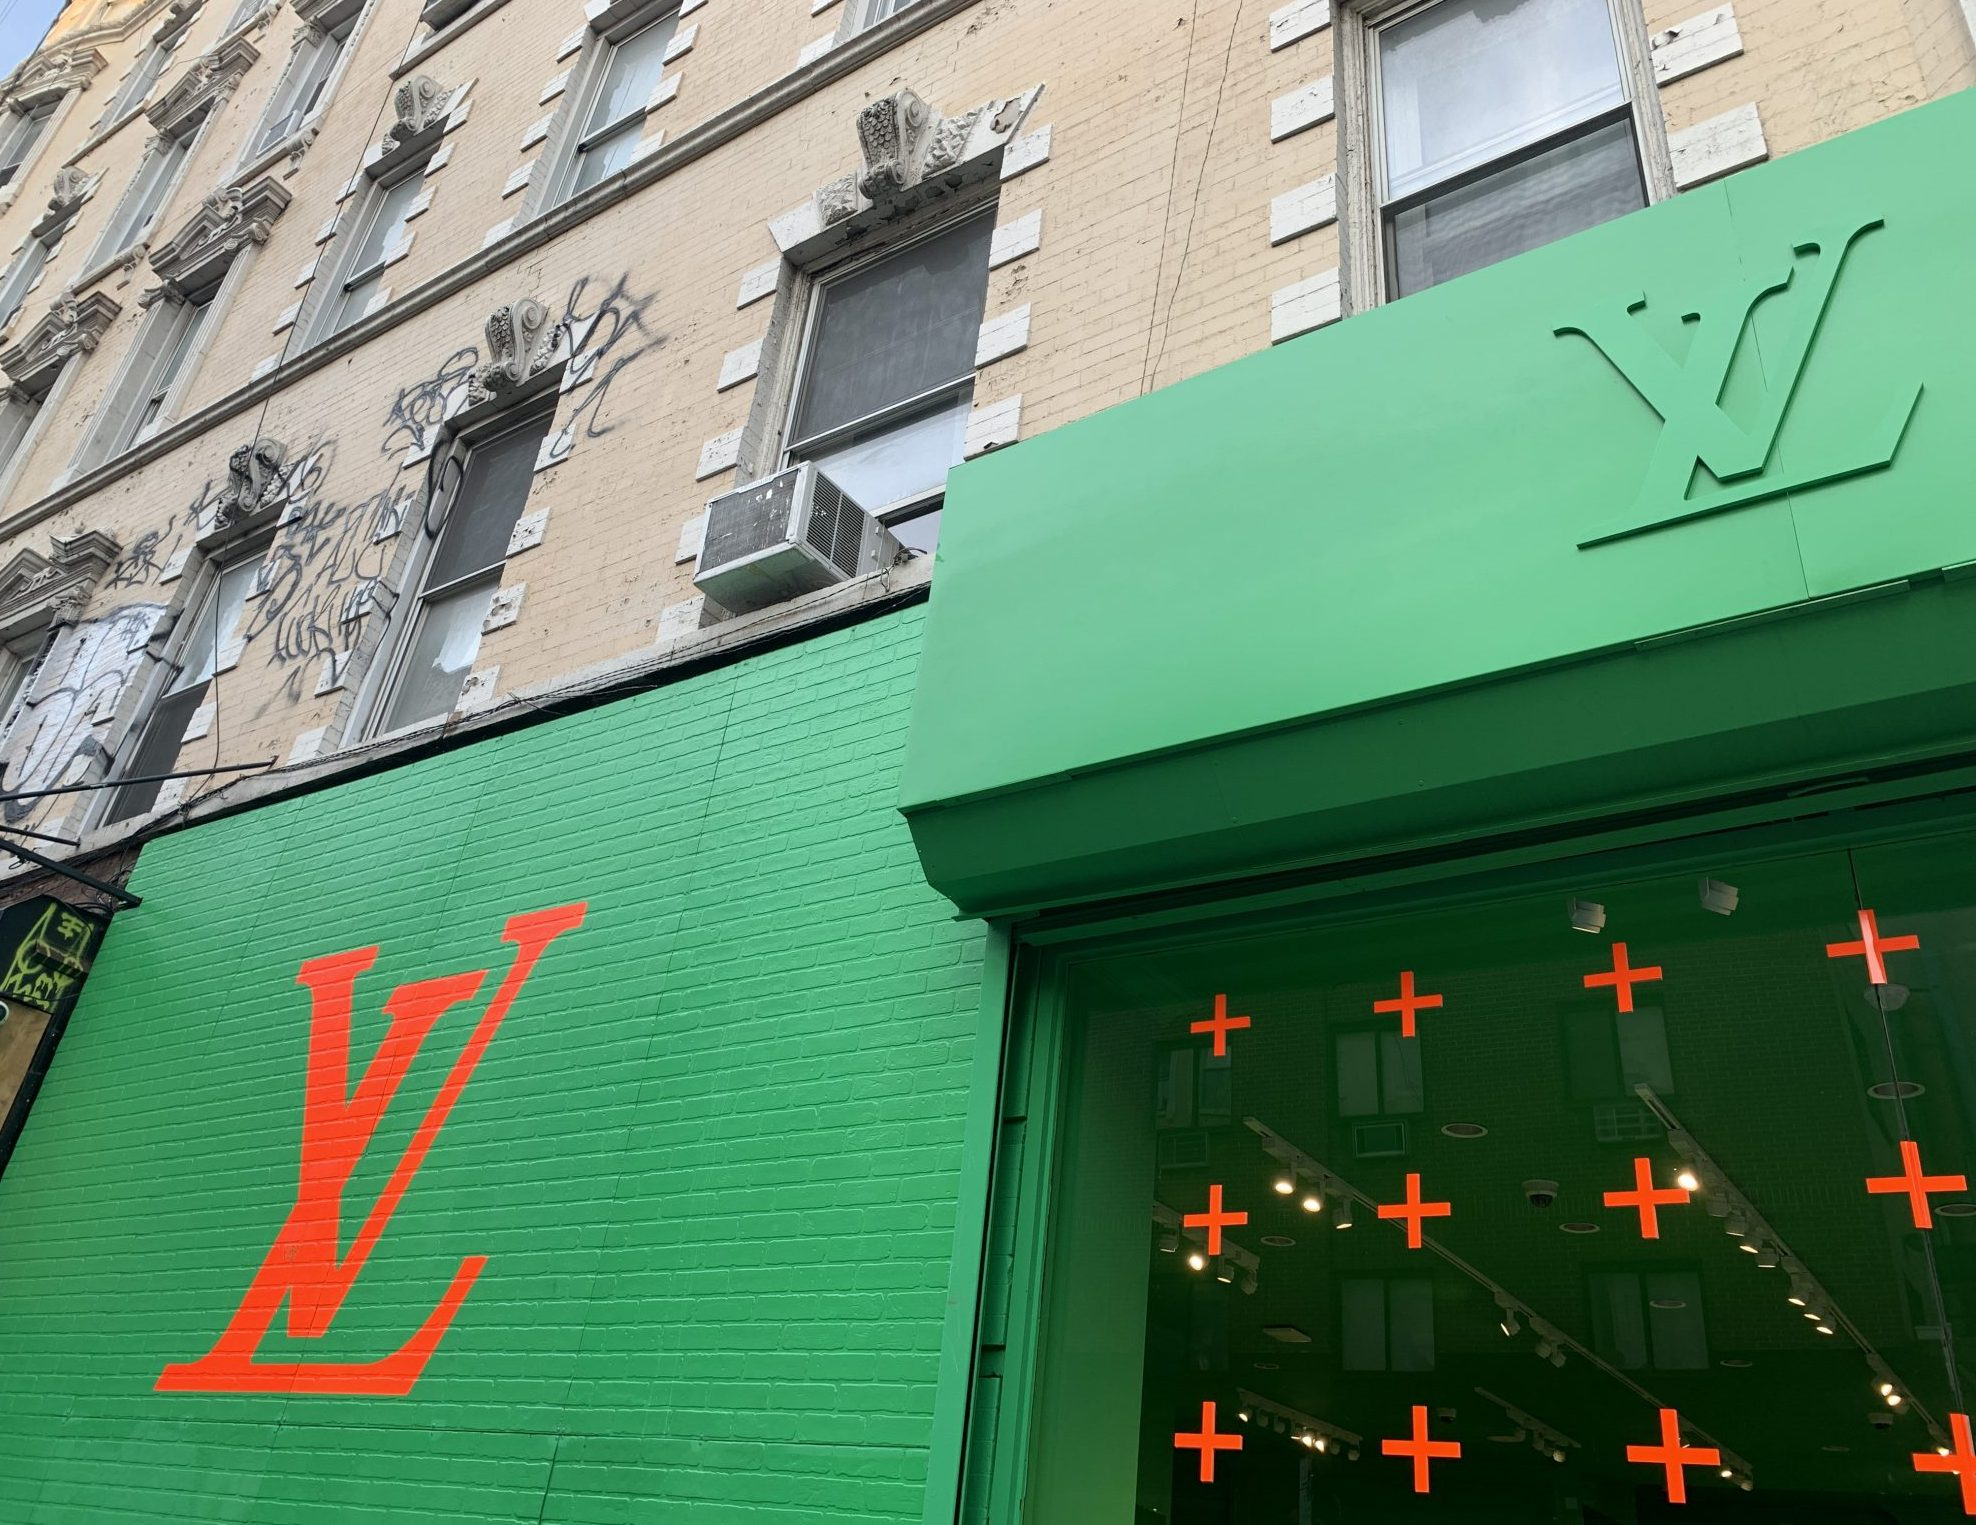 ルイヴィトン POP-UP in NYC #LV #Louisvuitton